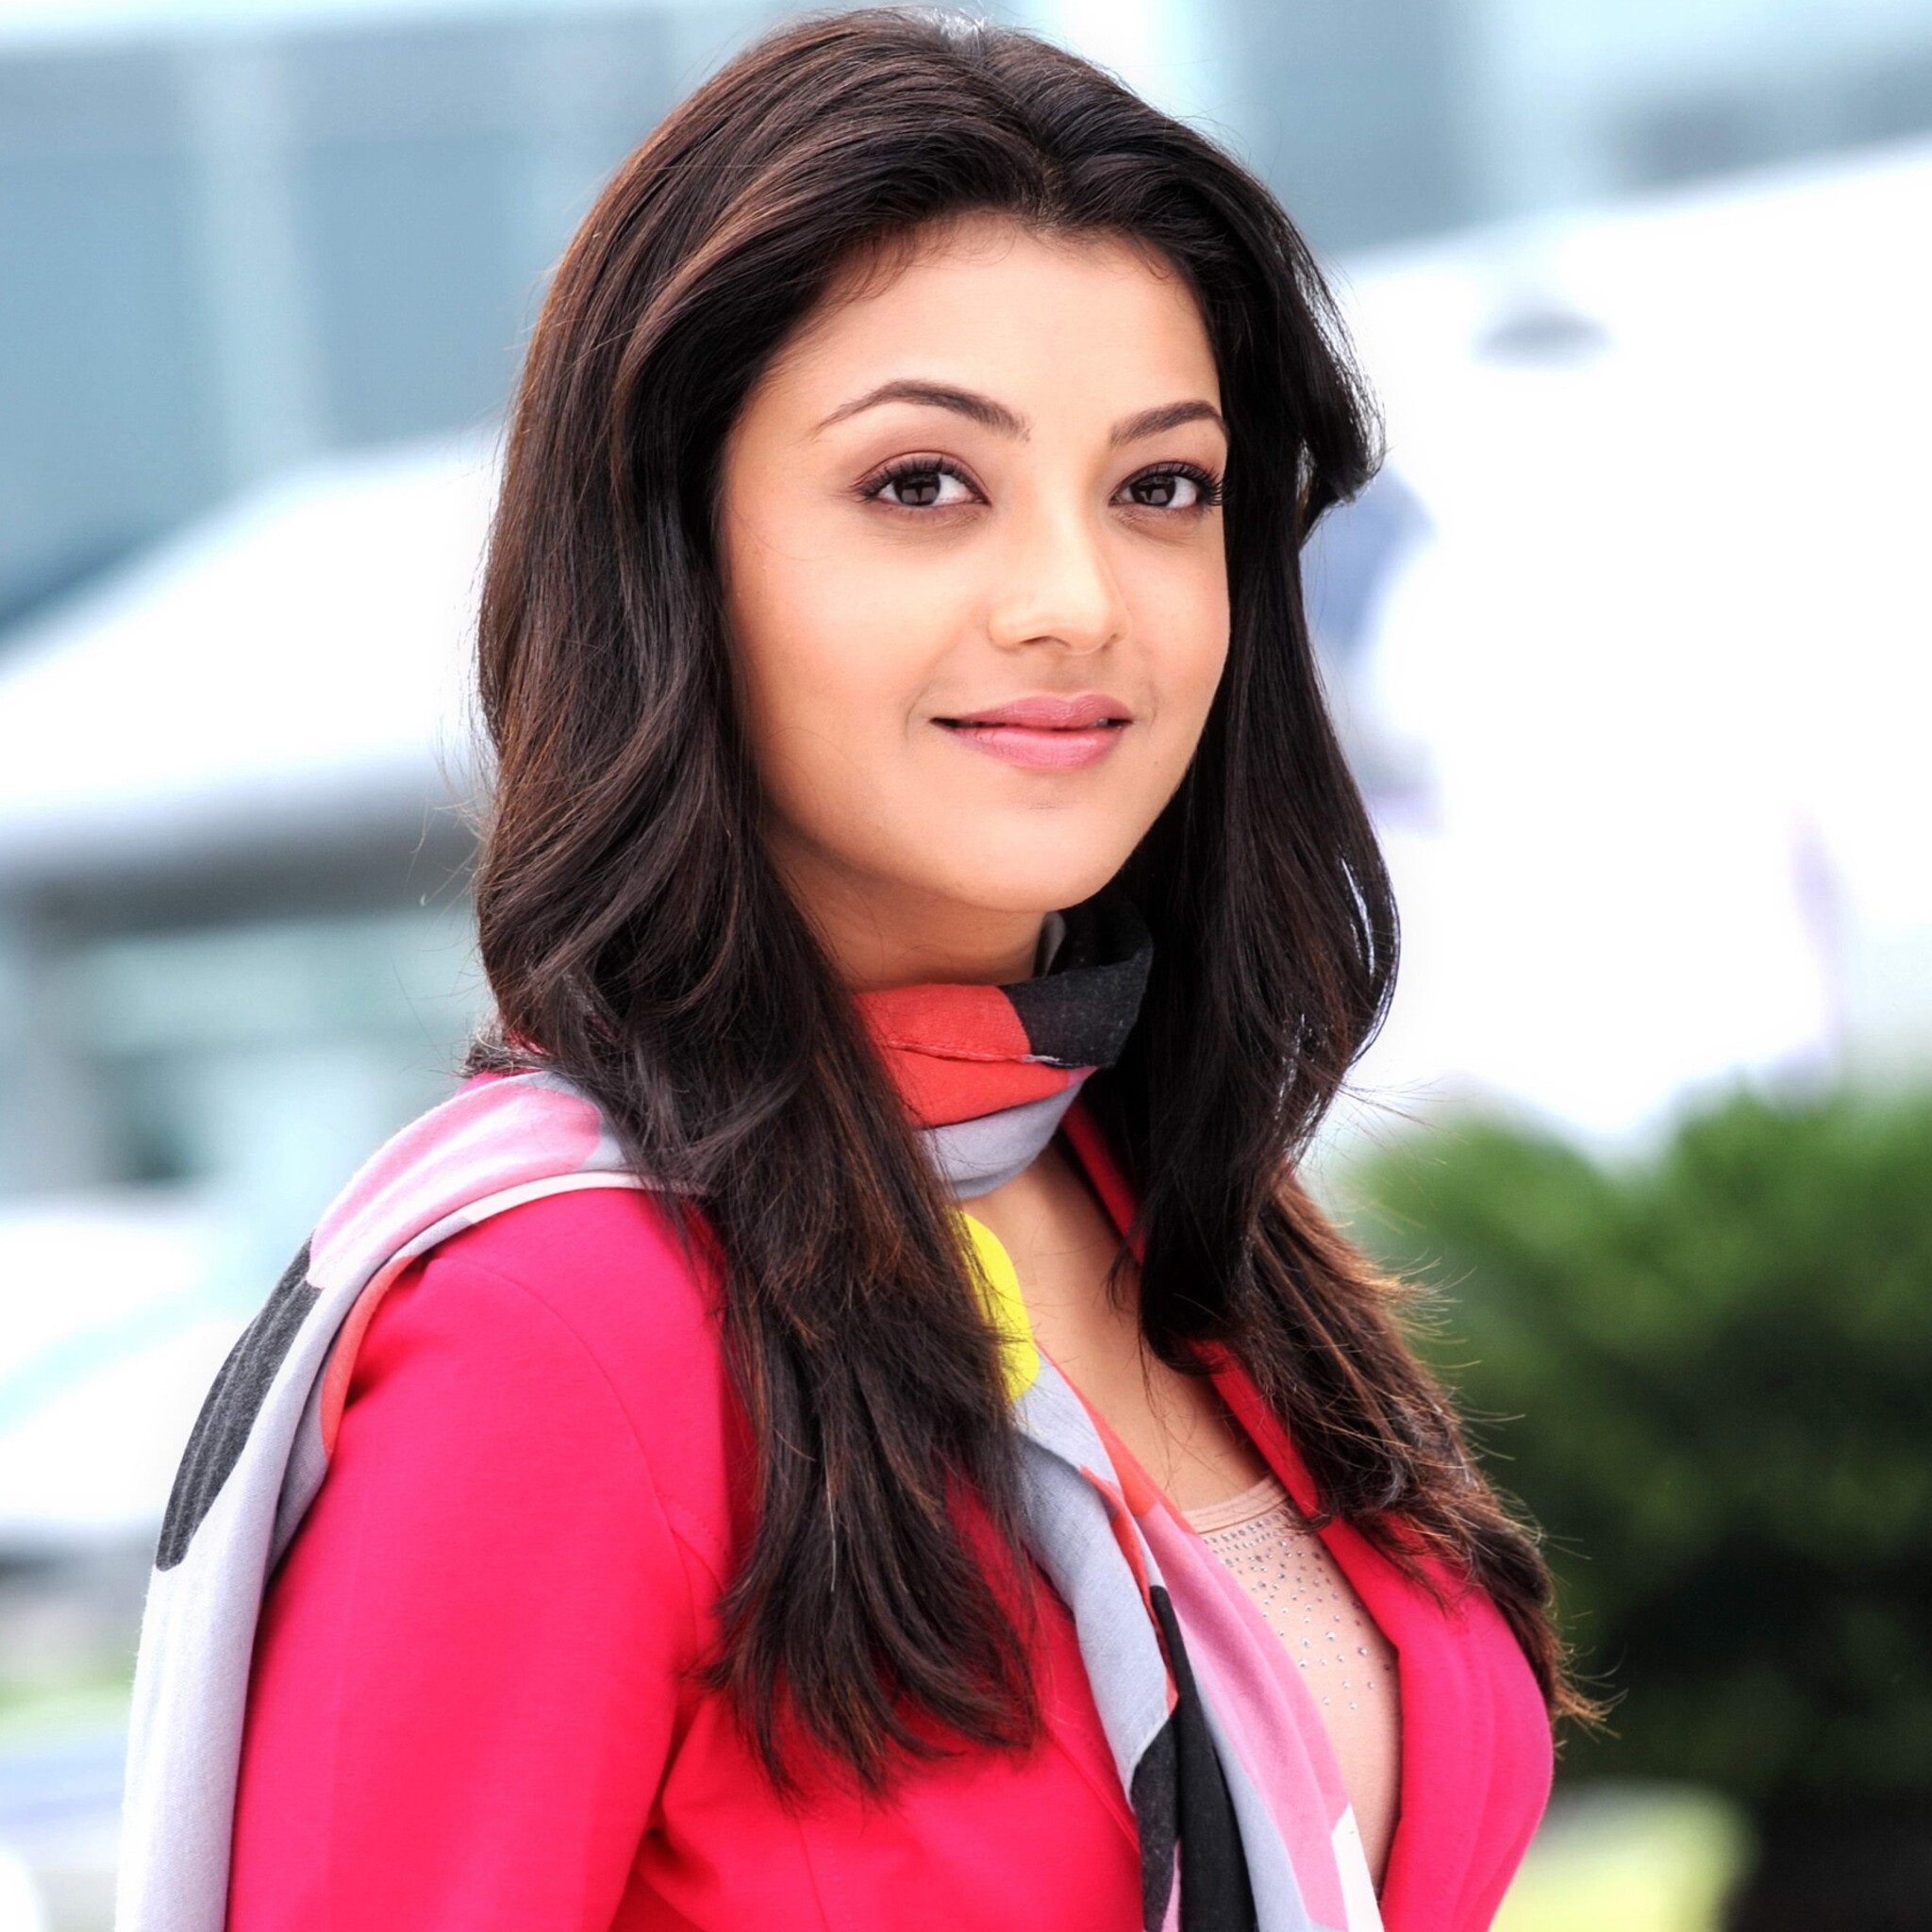 2048x2048 kajal agarwal 2 ipad air hd 4k wallpapers, images